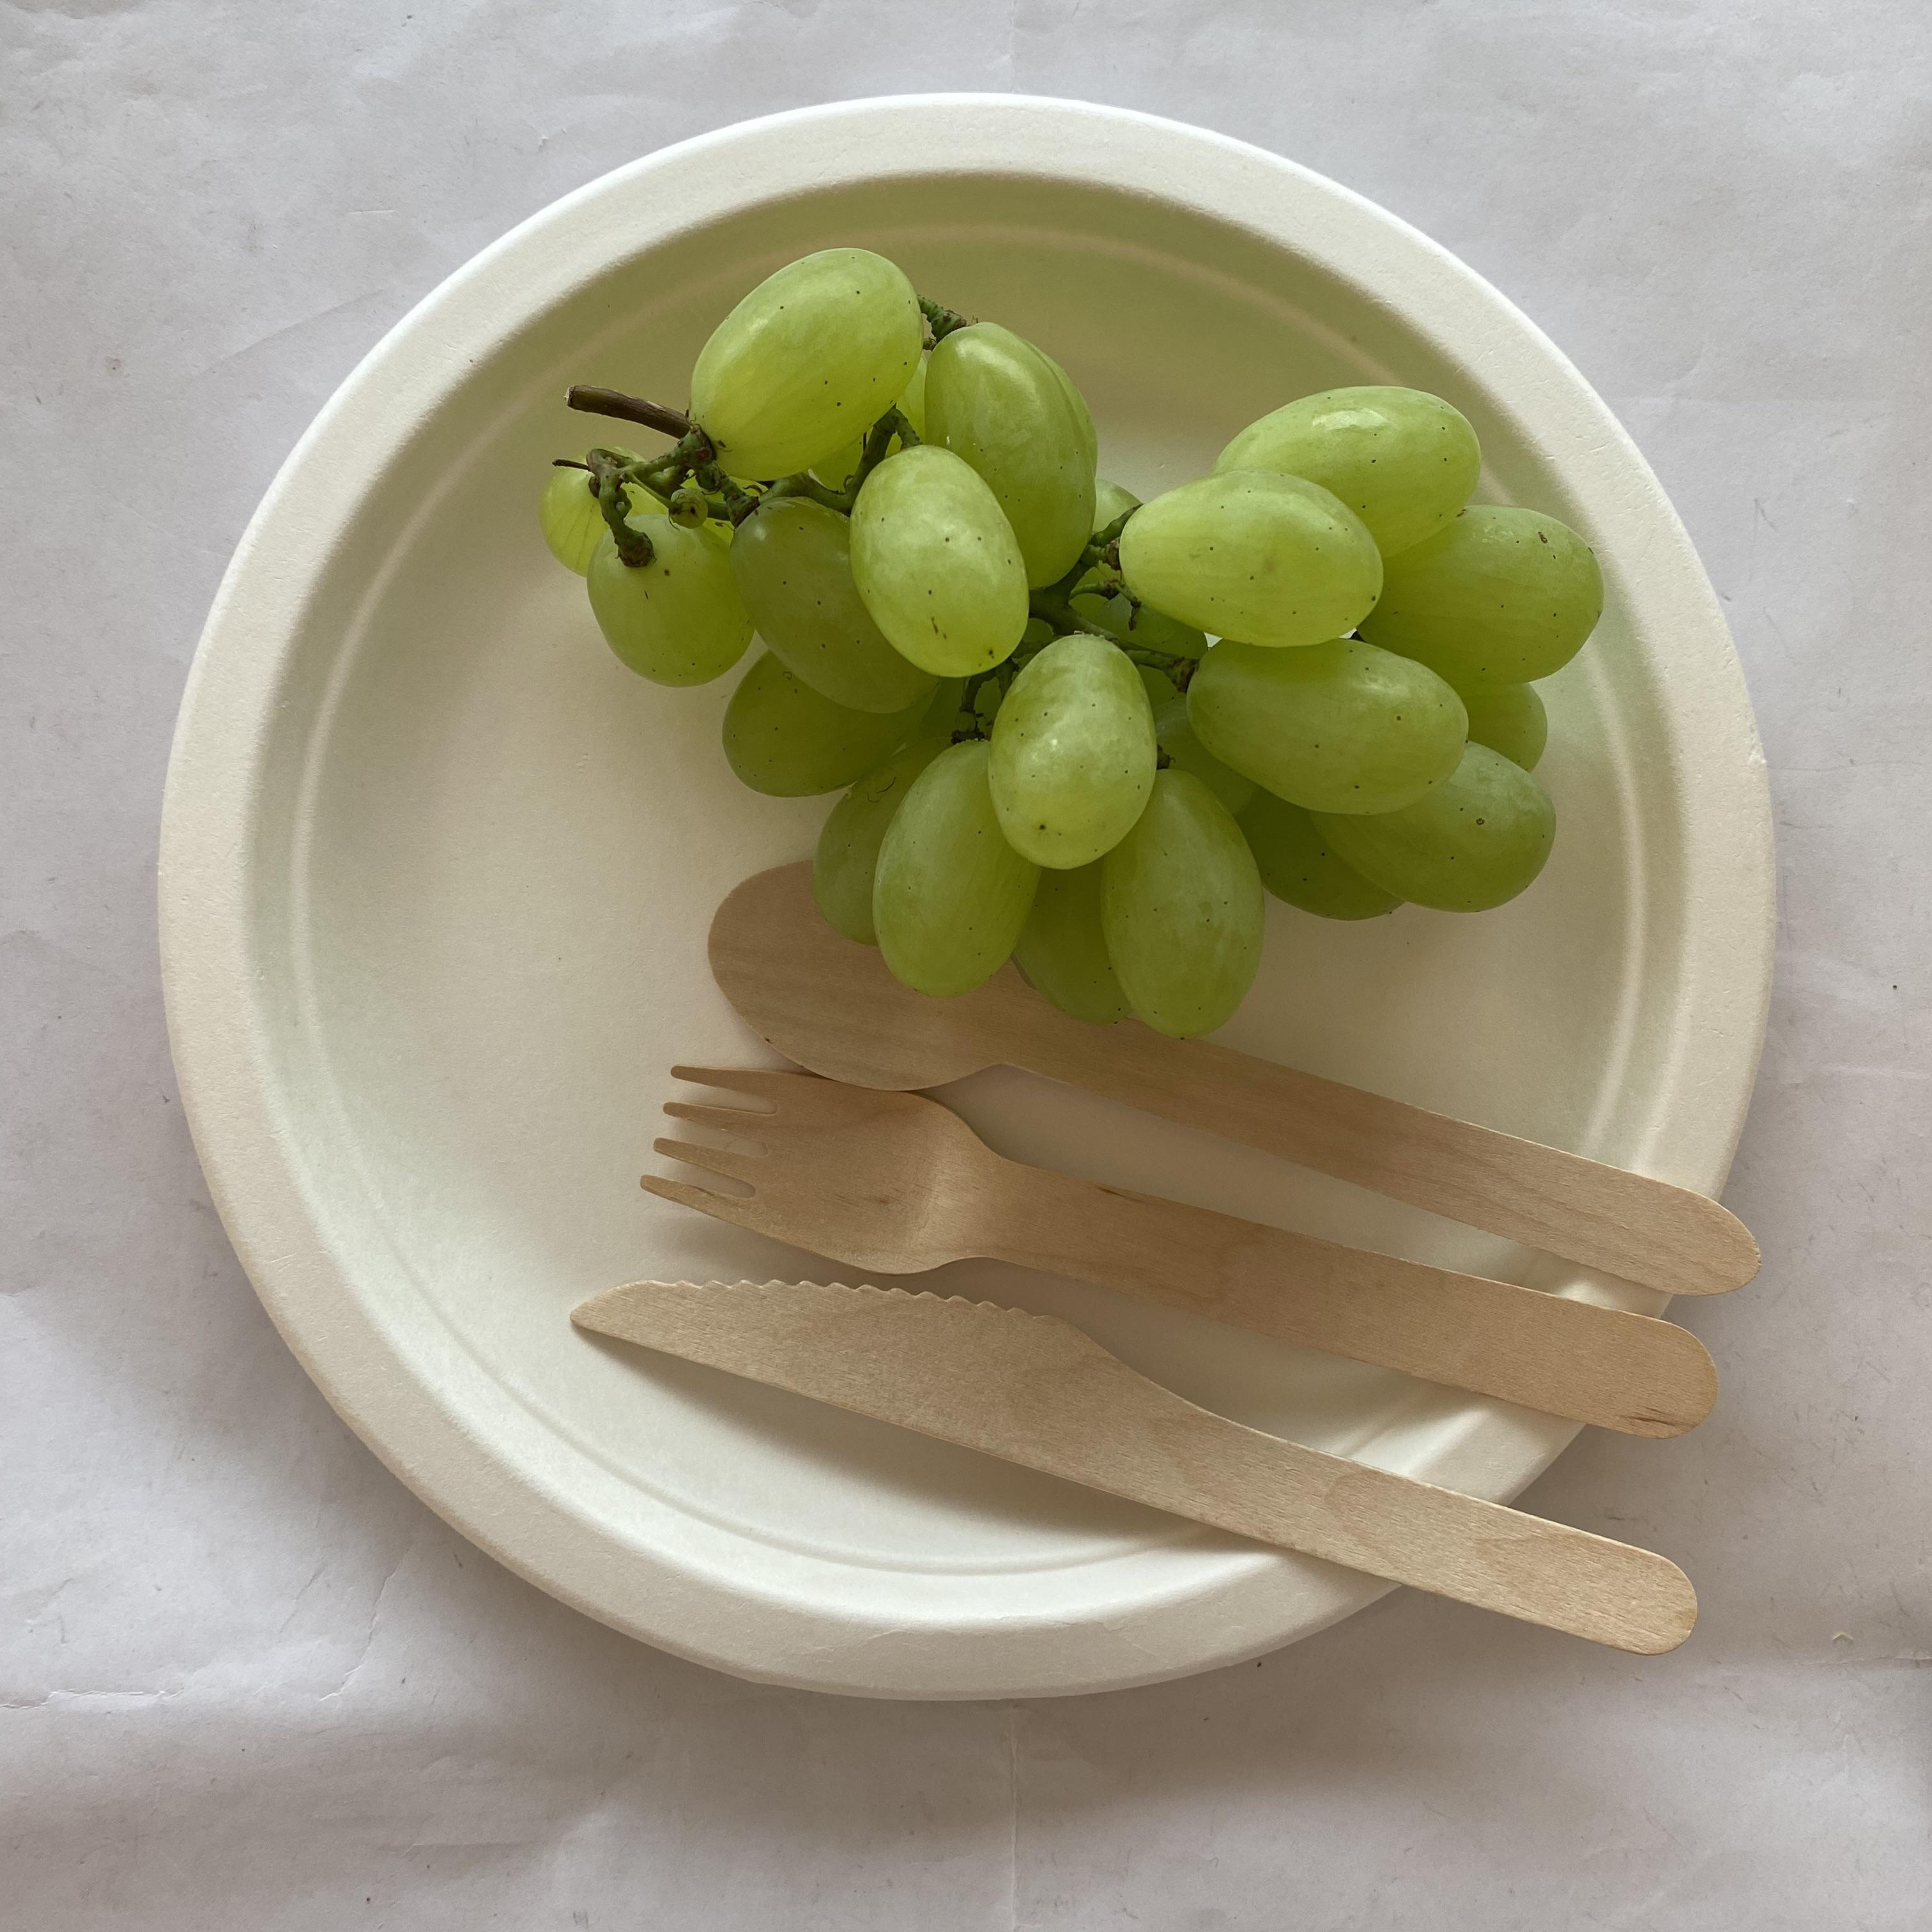 Disposable sugarcane bagasse dishes compostable biodegradable plates saucer bowls